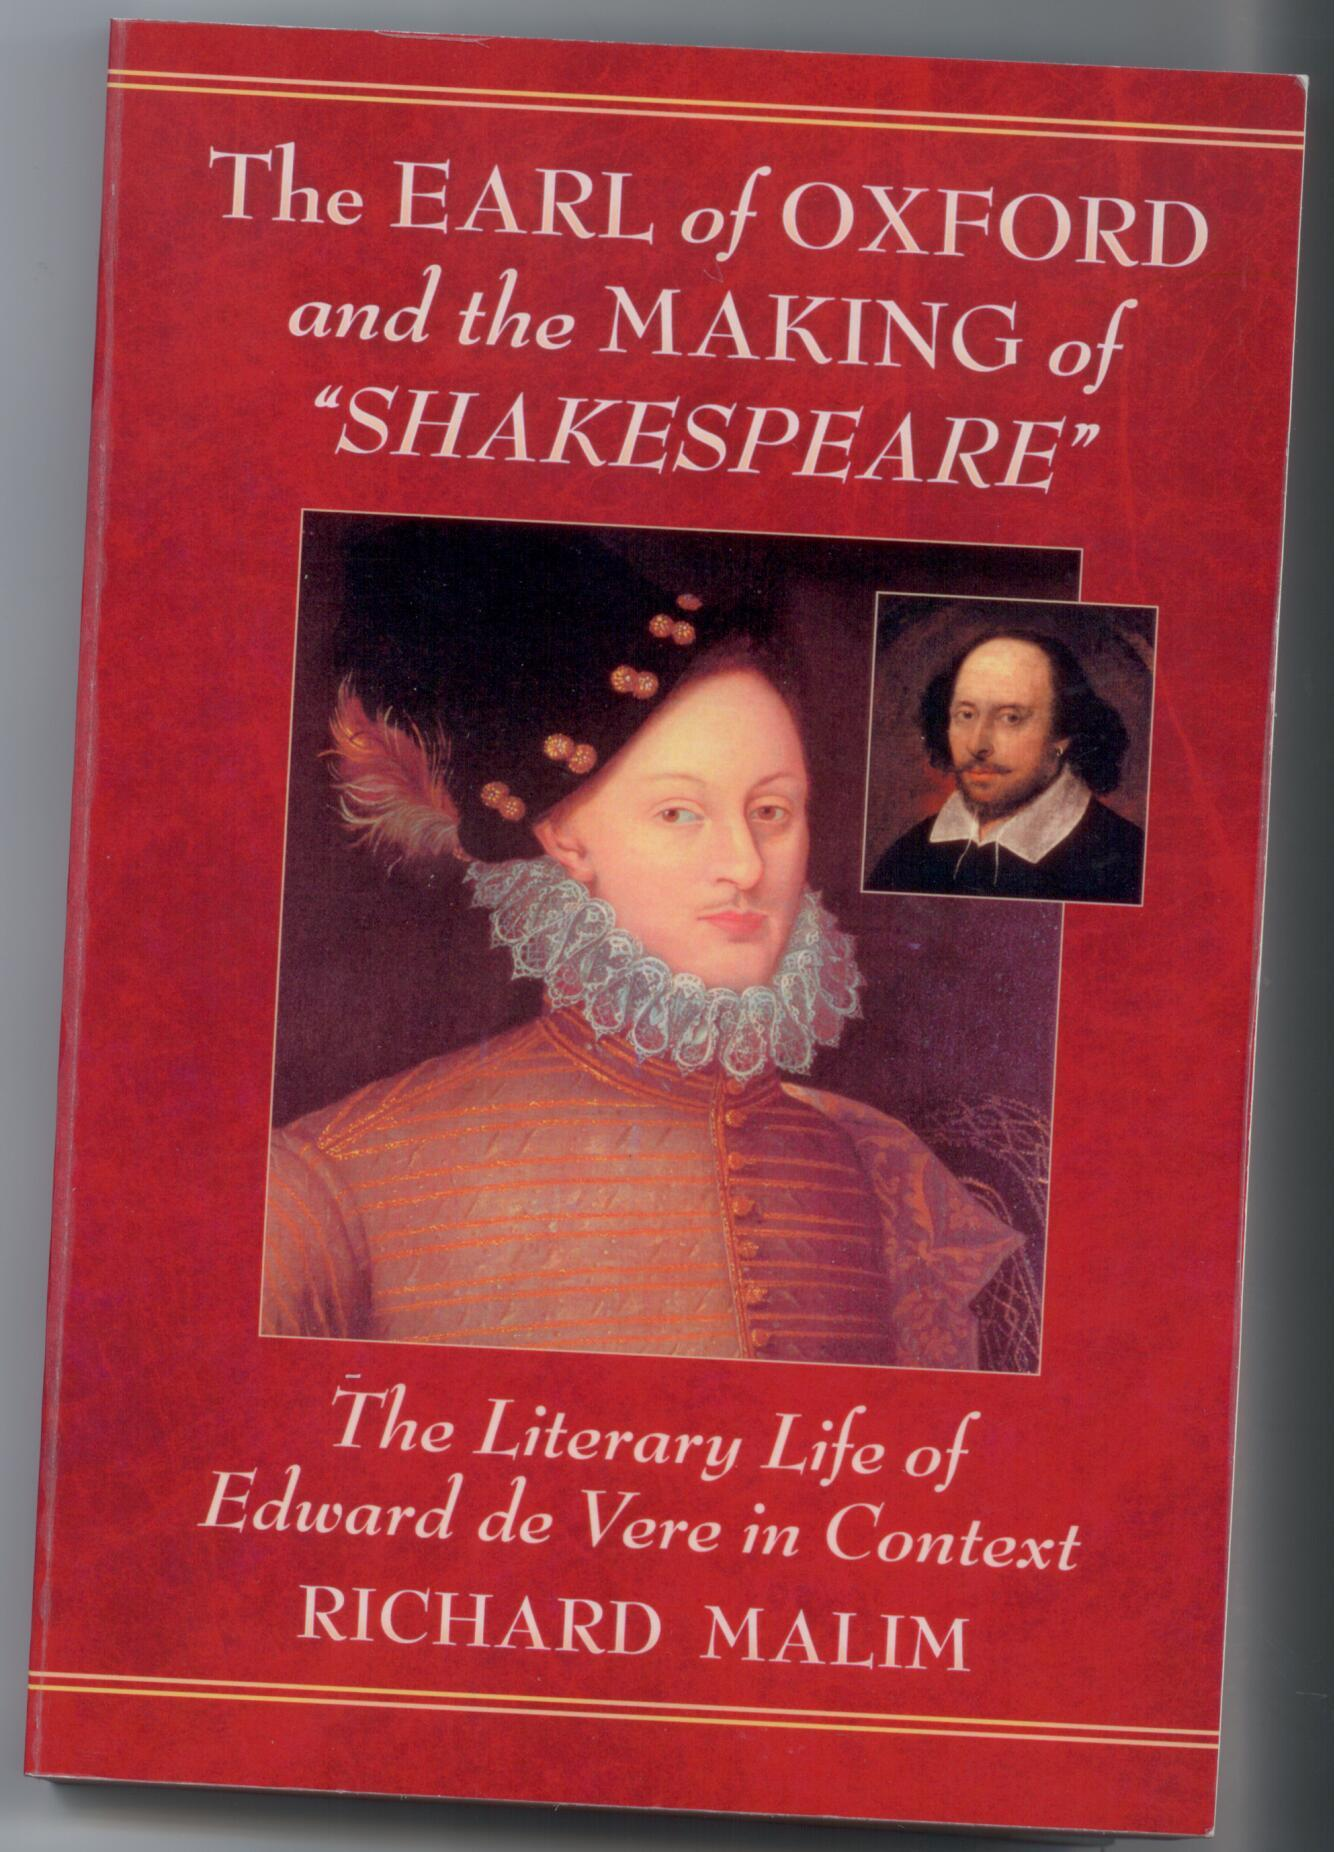 Did Edward De Vere have poor quality writing?